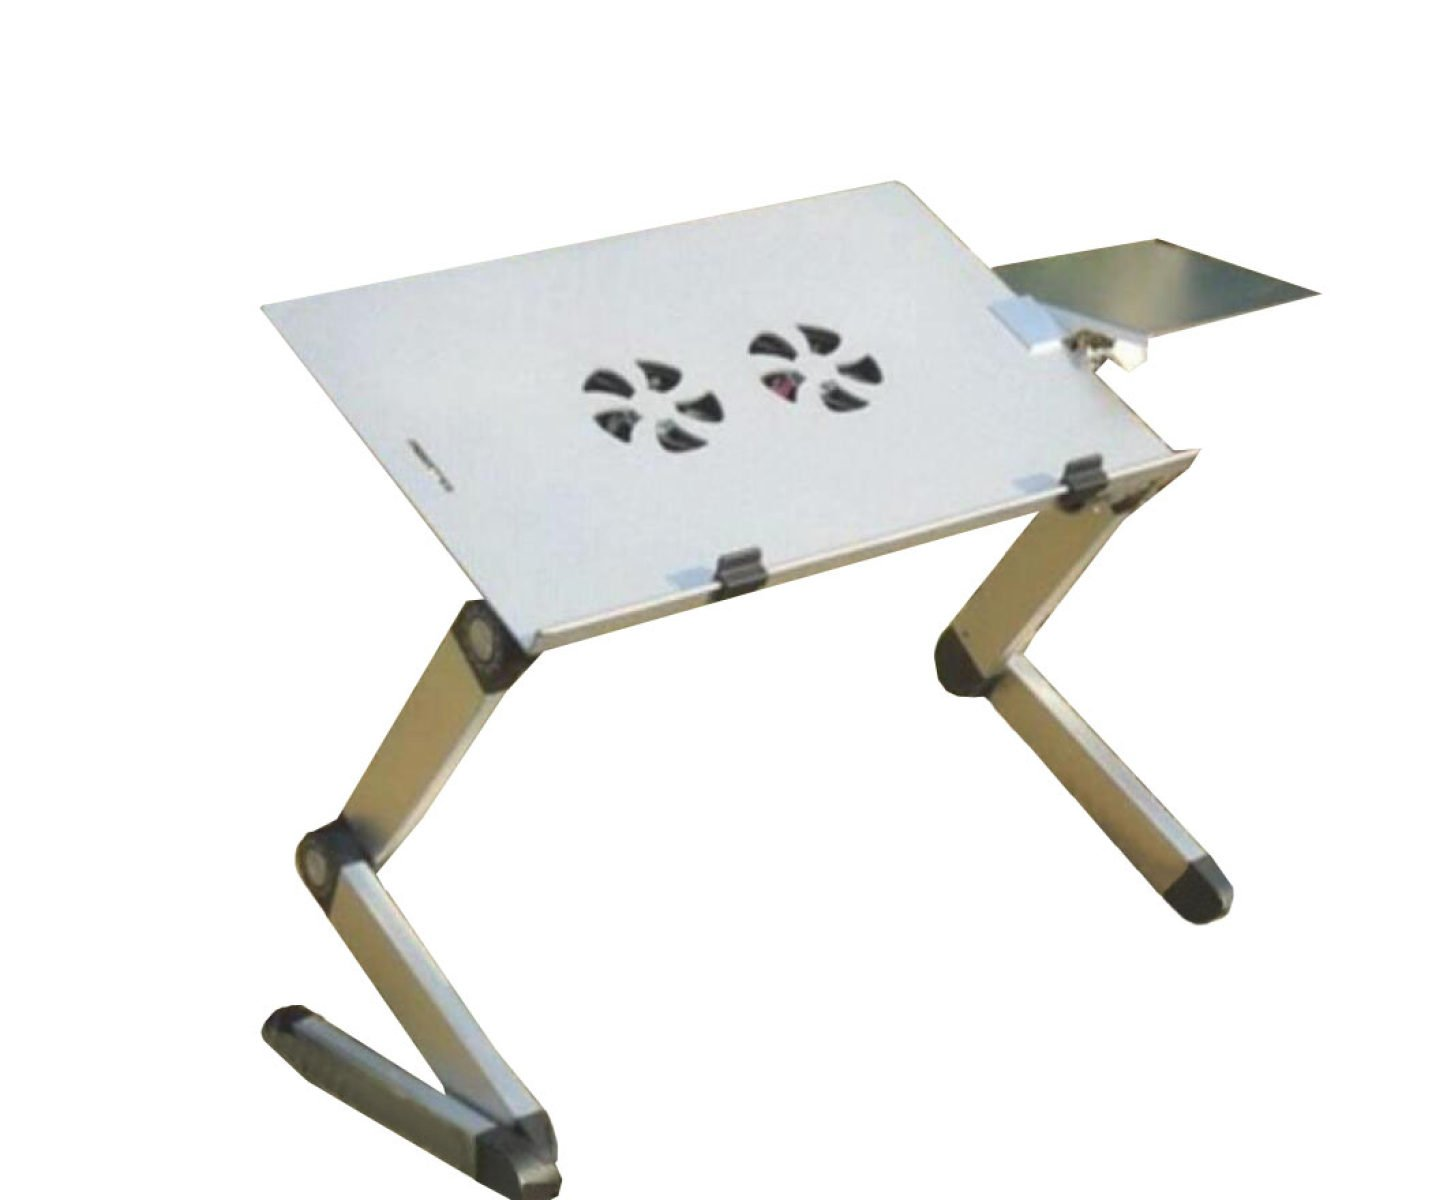 Laptop Table Aluminum Bed Computer Table Outdoor Barbecue Picnic Folding Table Outdoor Barbecue Picnic Gift,Black-OneSize by GHGJU (Image #2)